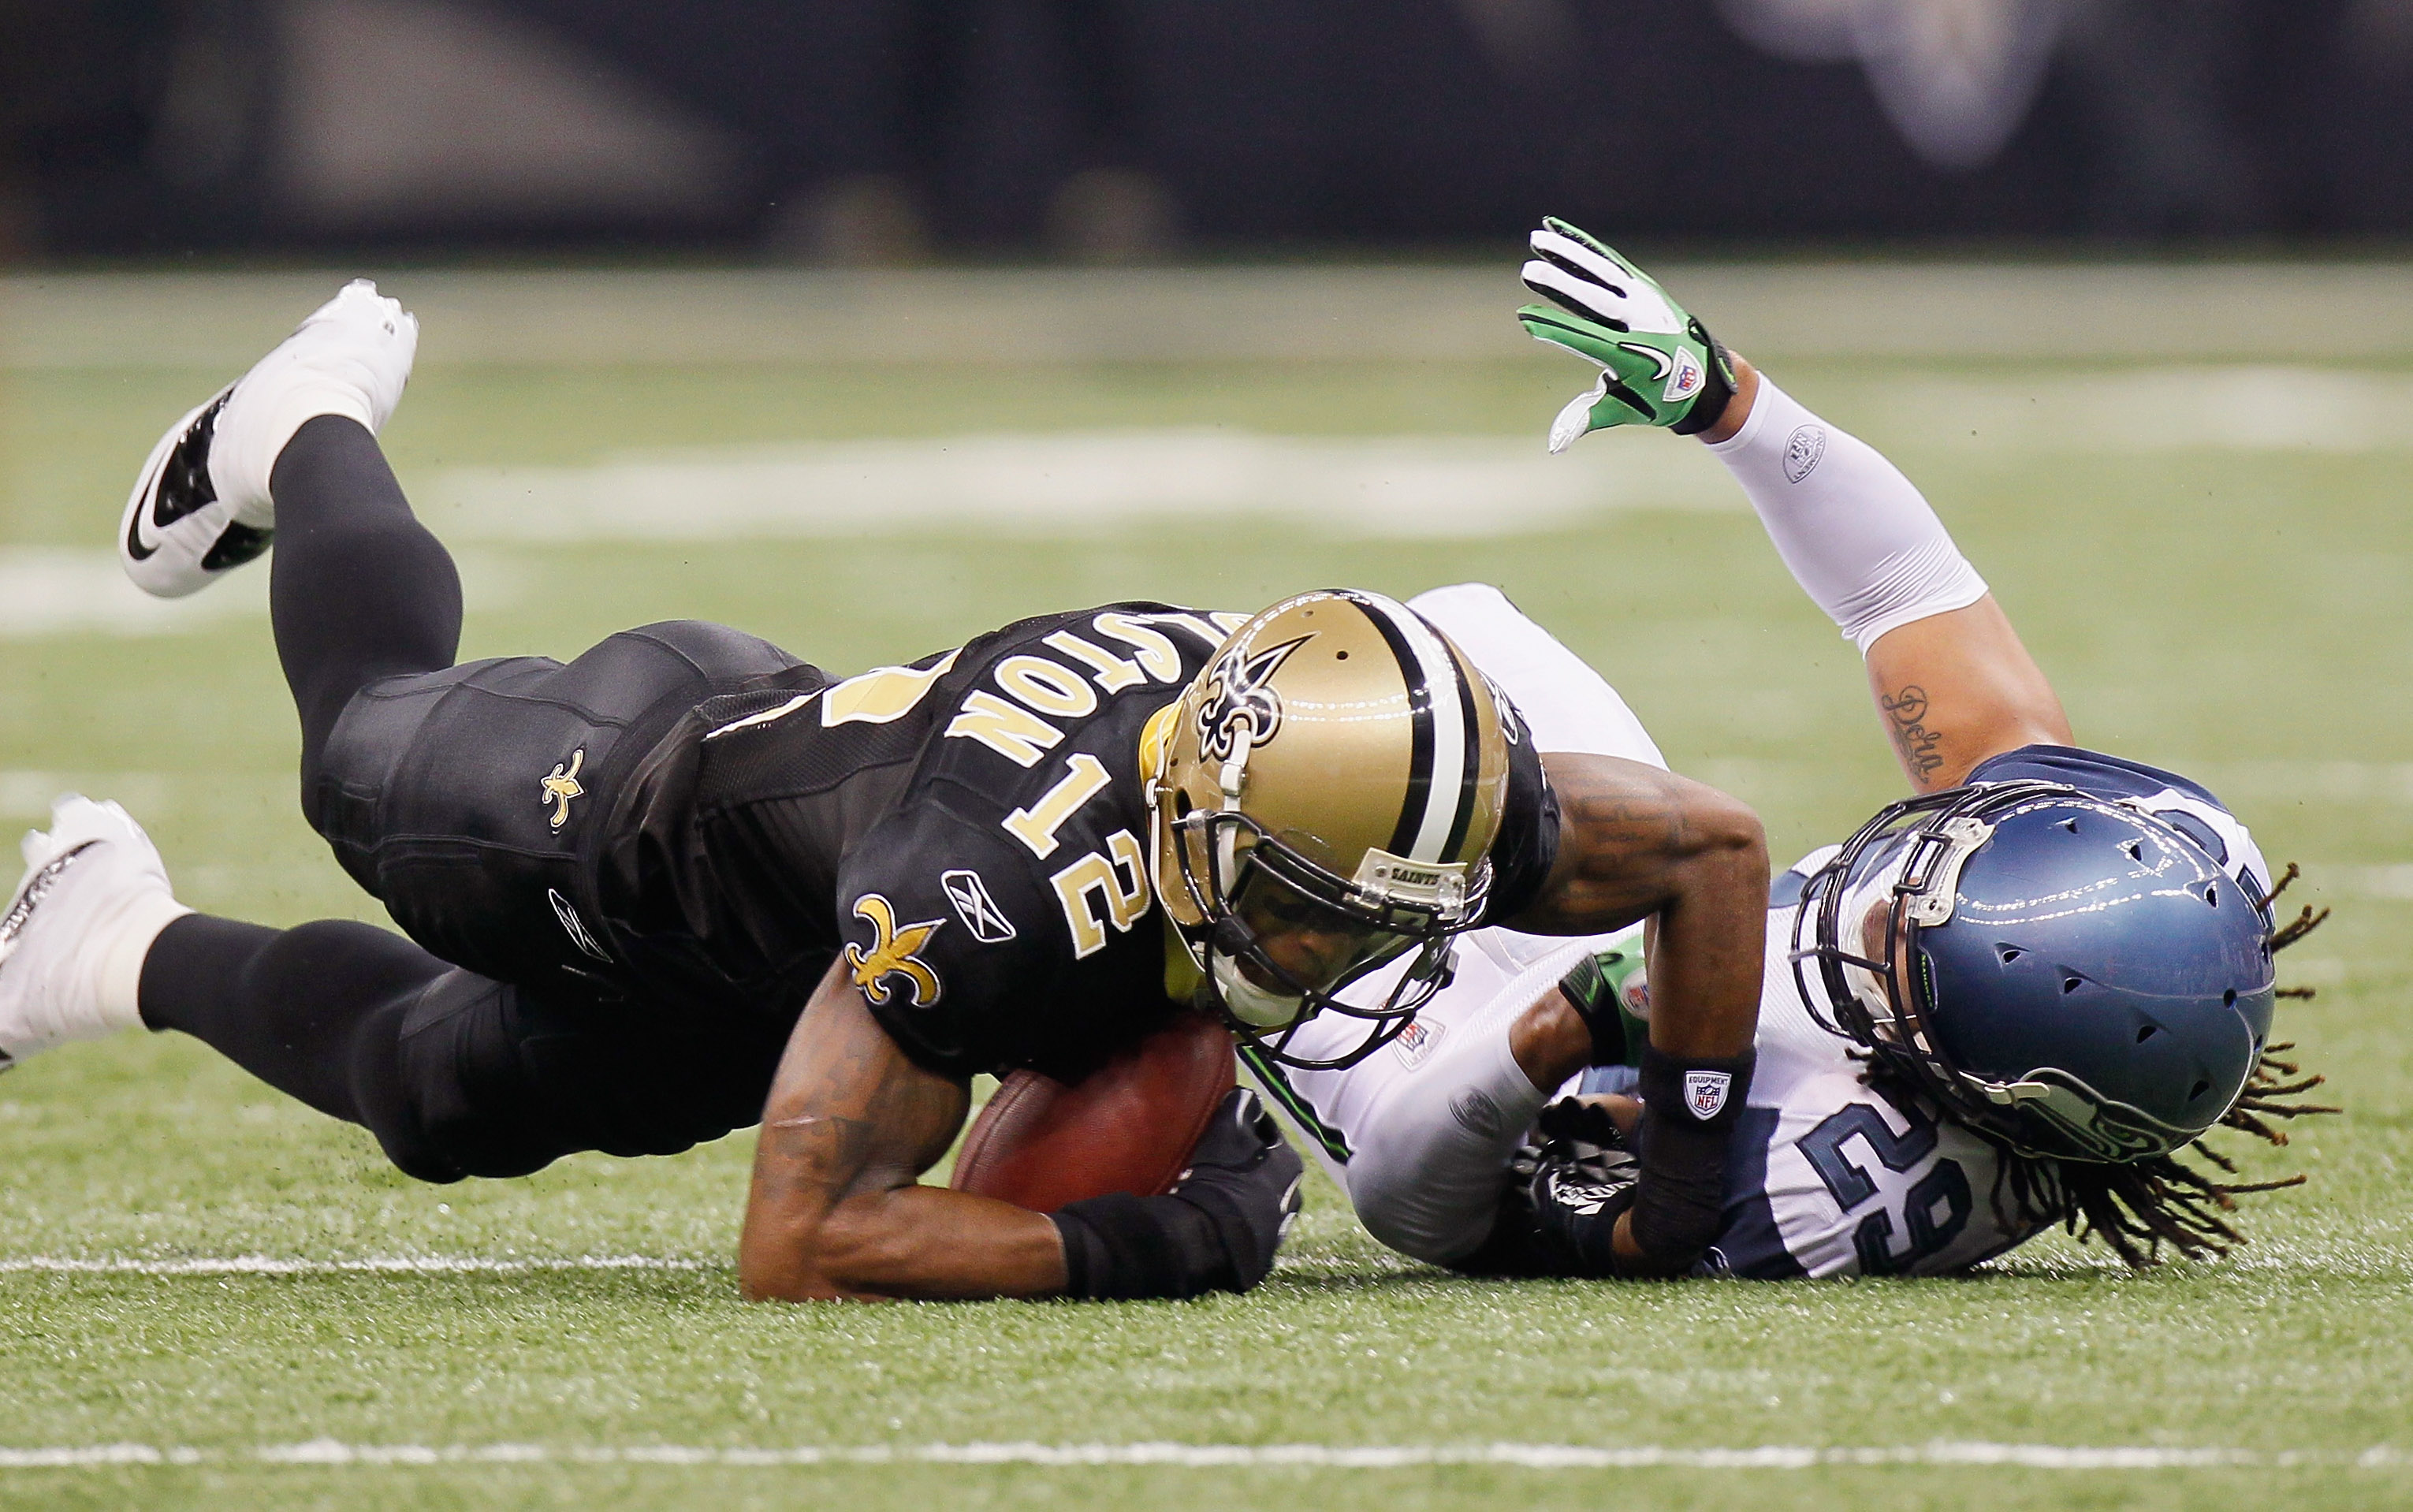 NEW ORLEANS - NOVEMBER 21:  Marques Colston #12 of the New Orleans Saints is tackled by Earl Thomas #29 of the Seattle Seahawks at Louisiana Superdome on November 21, 2010 in New Orleans, Louisiana.  (Photo by Kevin C. Cox/Getty Images)